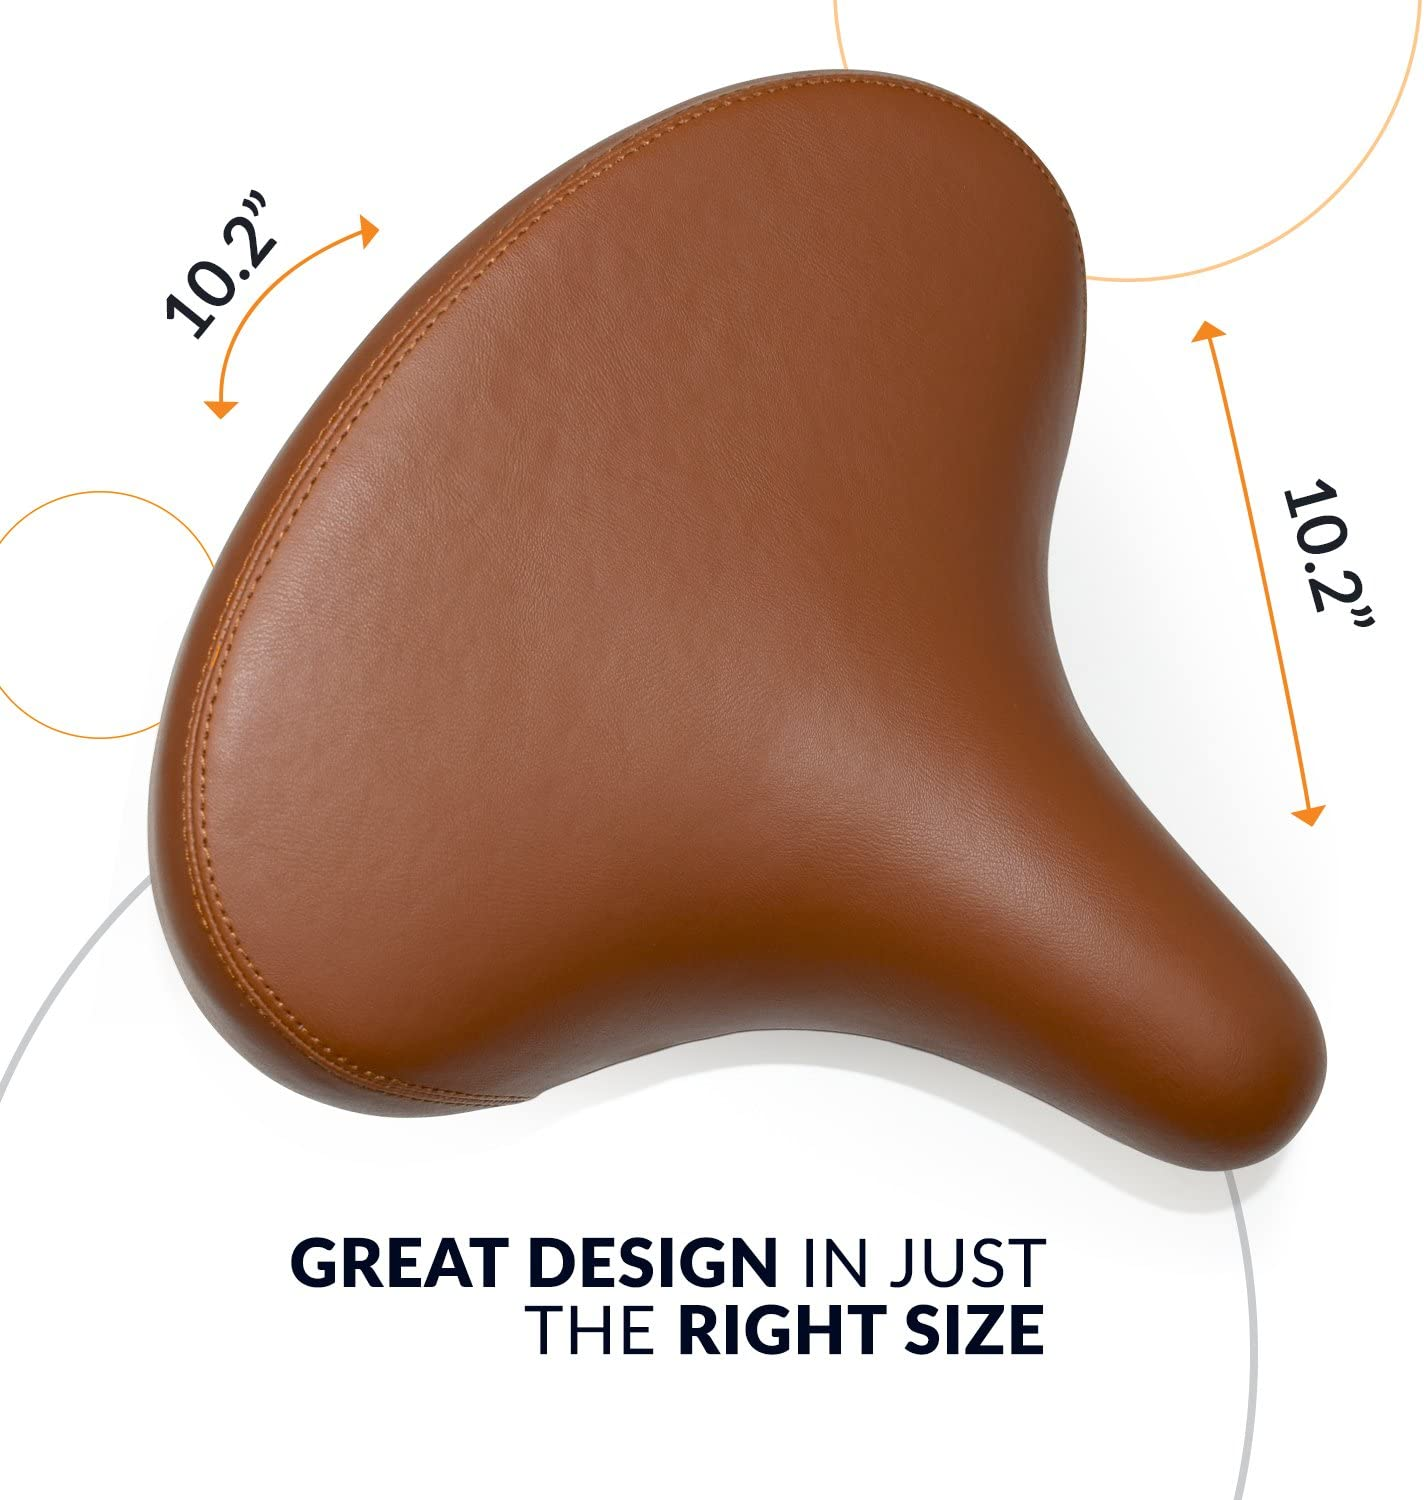 Great Replacement Bike Saddle with Padding for Women and Men Bikeroo Most Comfortable Cruiser Bike Saddle Extra Wide Bicycle Seat